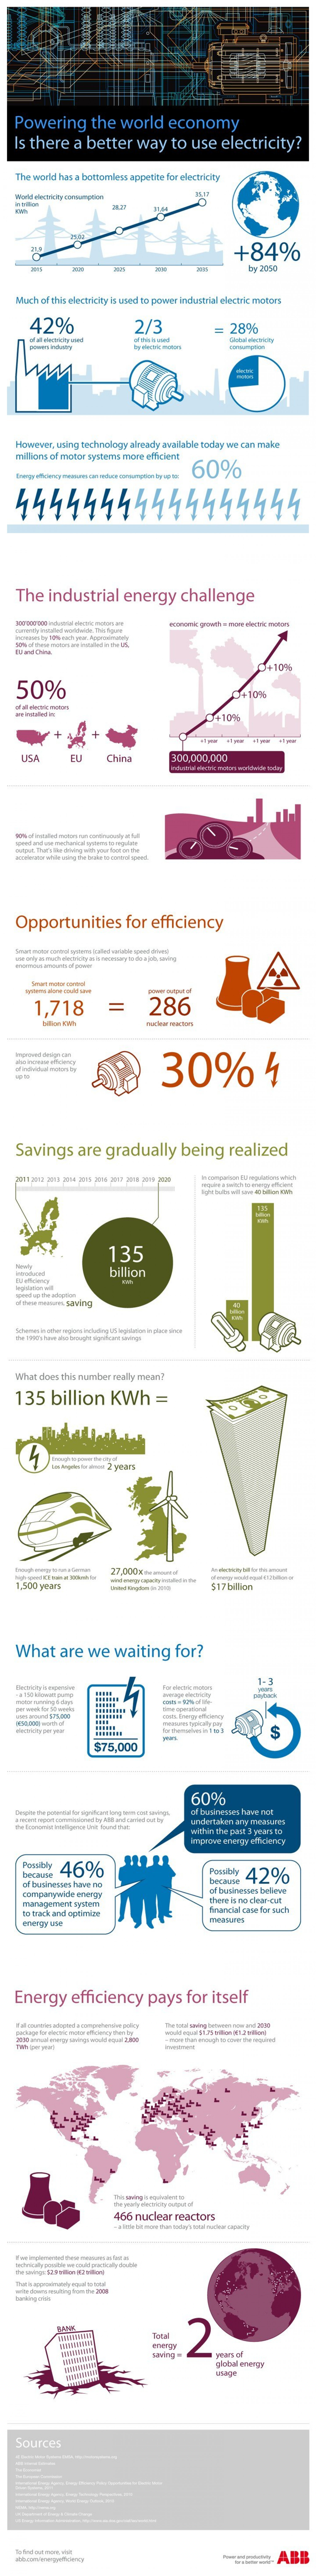 Powering the World Economy: Is there a Better Way to Use Electricity? Infographic